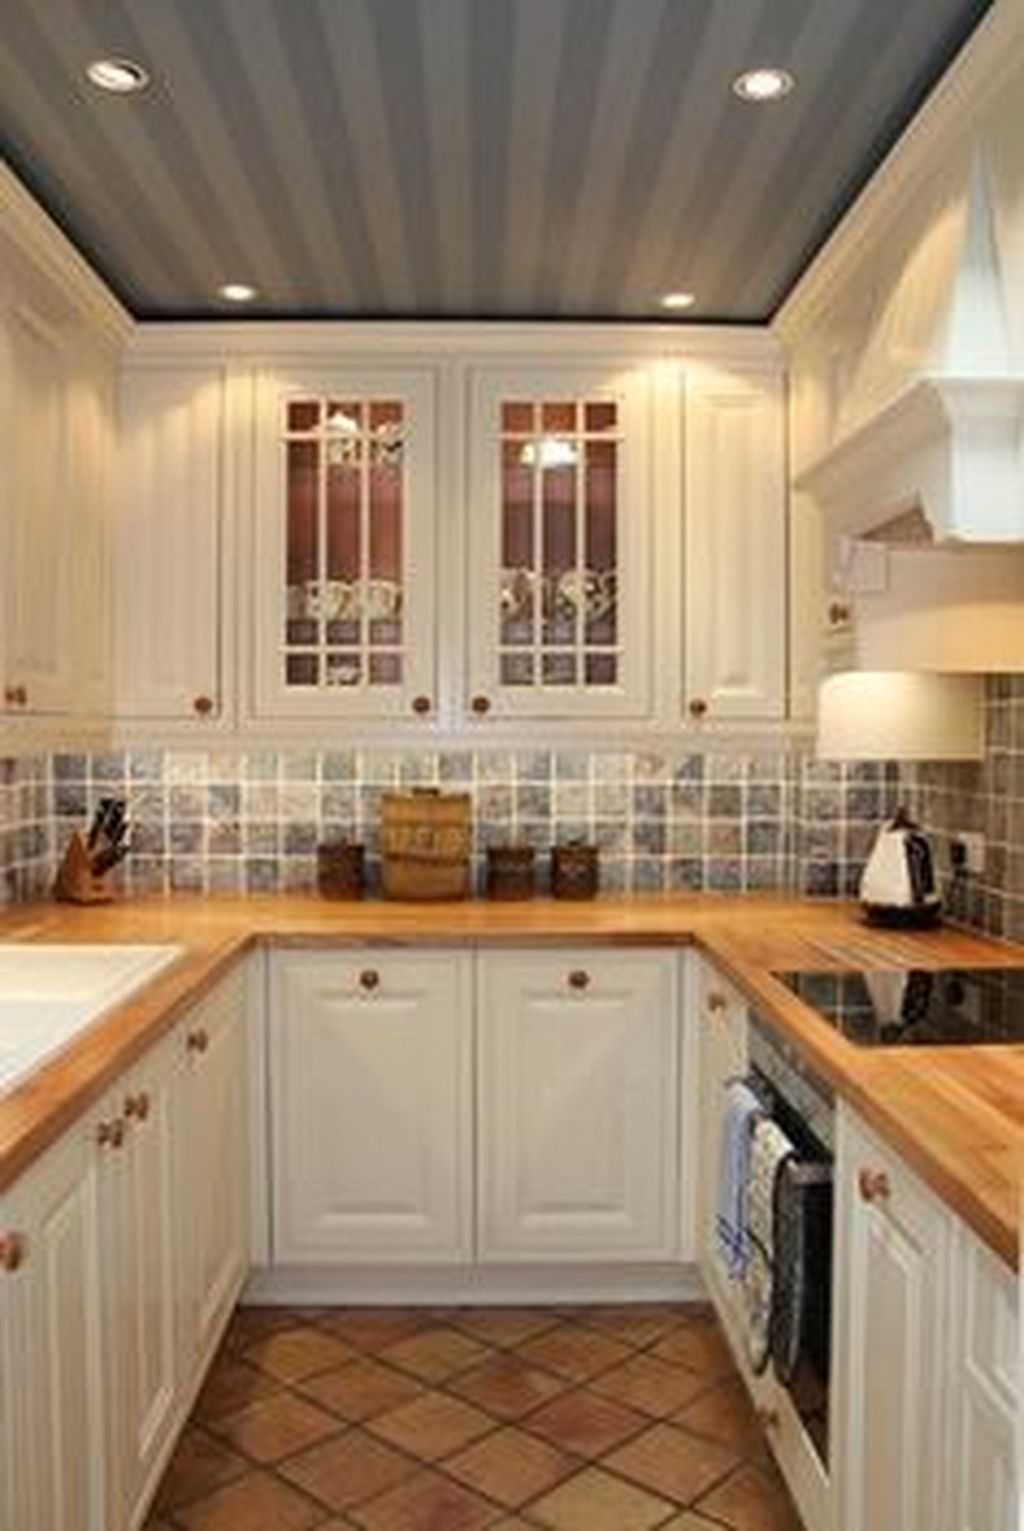 30 awesome u shaped kitchen designs for small spaces small u shaped kitchens kitchen remodel on kitchen ideas u shaped layout id=46431